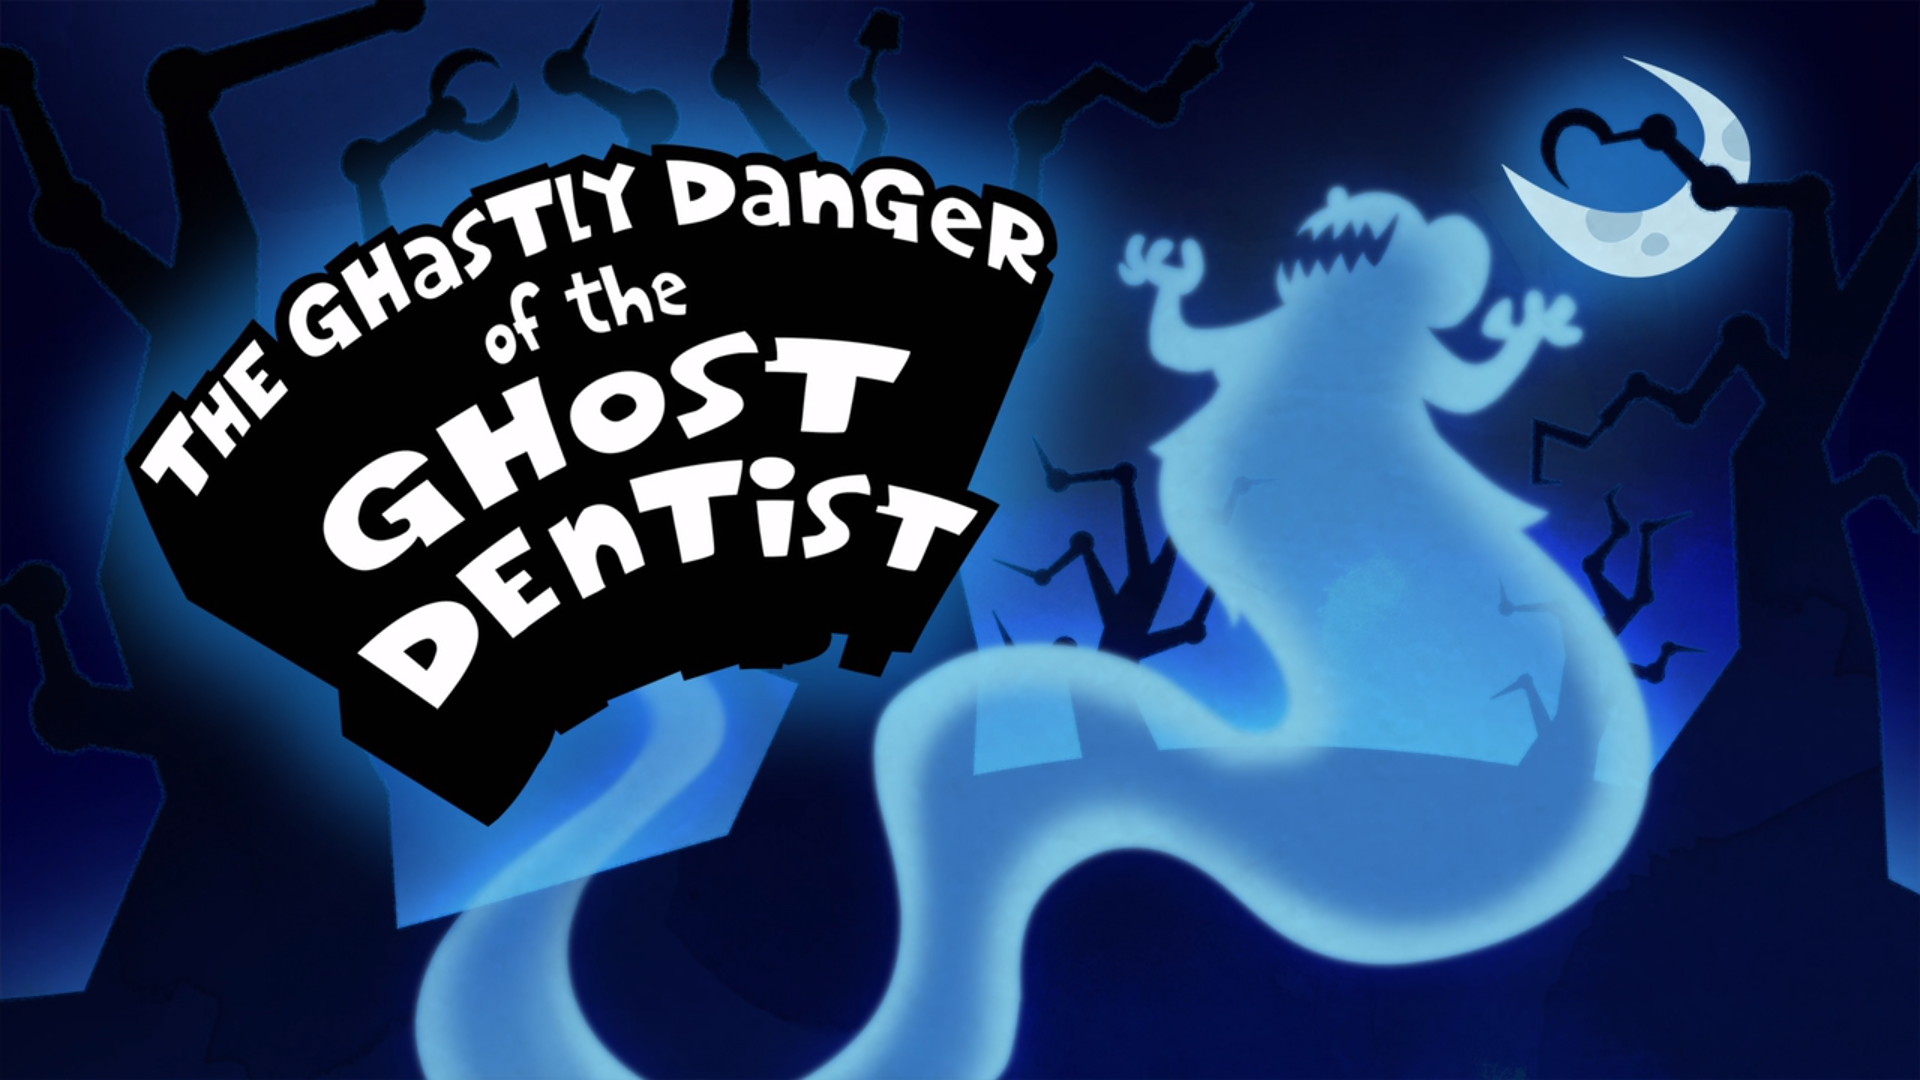 The Ghastly Danger of the Ghost Dentist